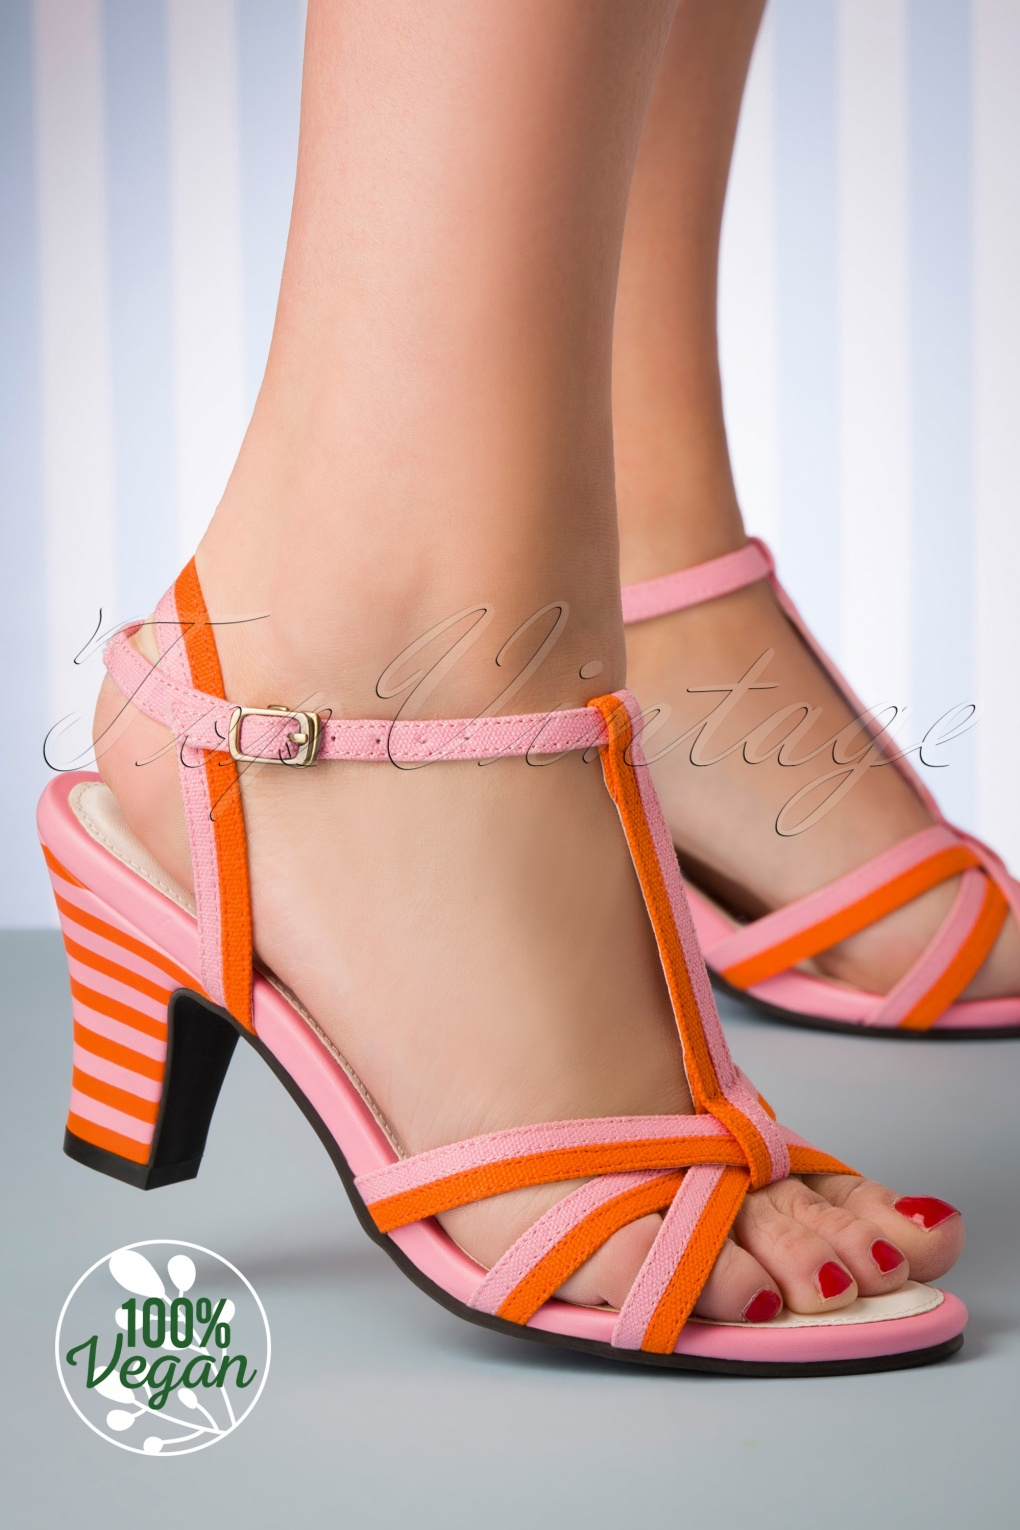 What Did Women Wear in the 1950s? 1950s Fashion Guide 50s Ava Vegan Smootie Sandals in Pink and Orange £19.95 AT vintagedancer.com